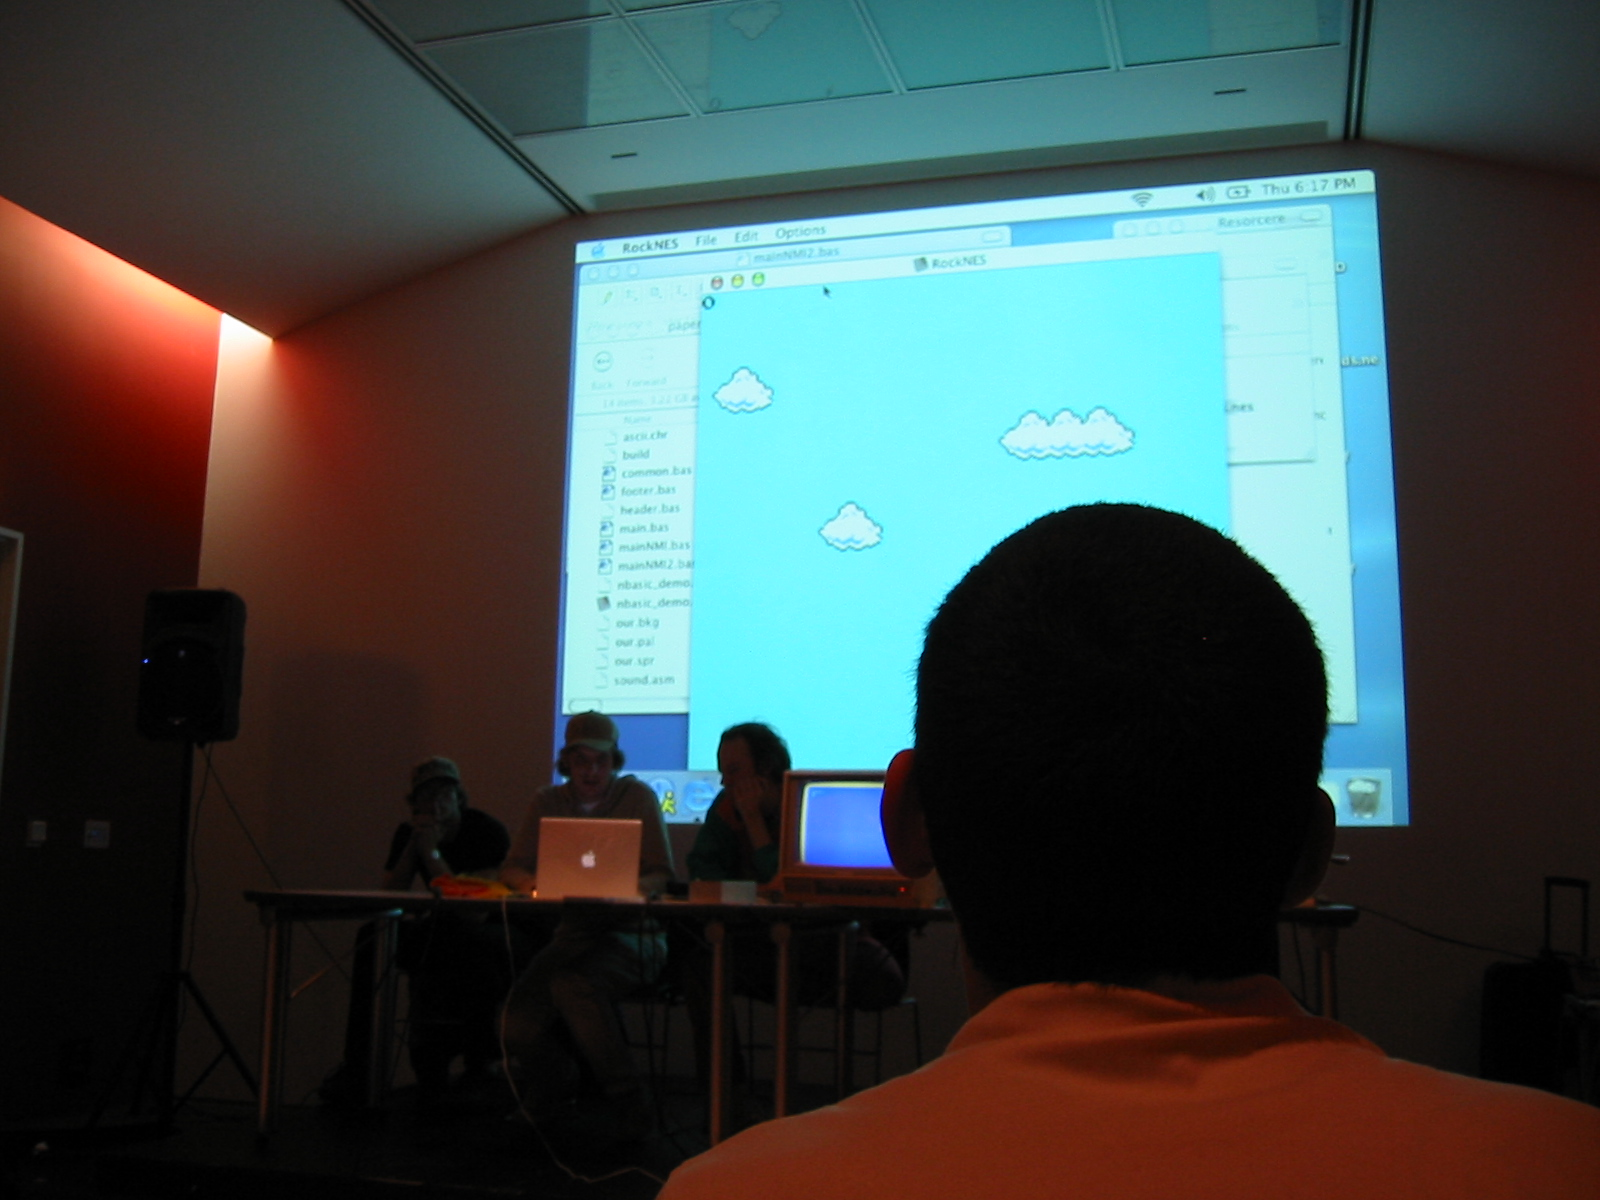 8 BIT presentation - BEIGE at Version>03 Festival, The Museum of Contemporary Art in Chicago (2003)